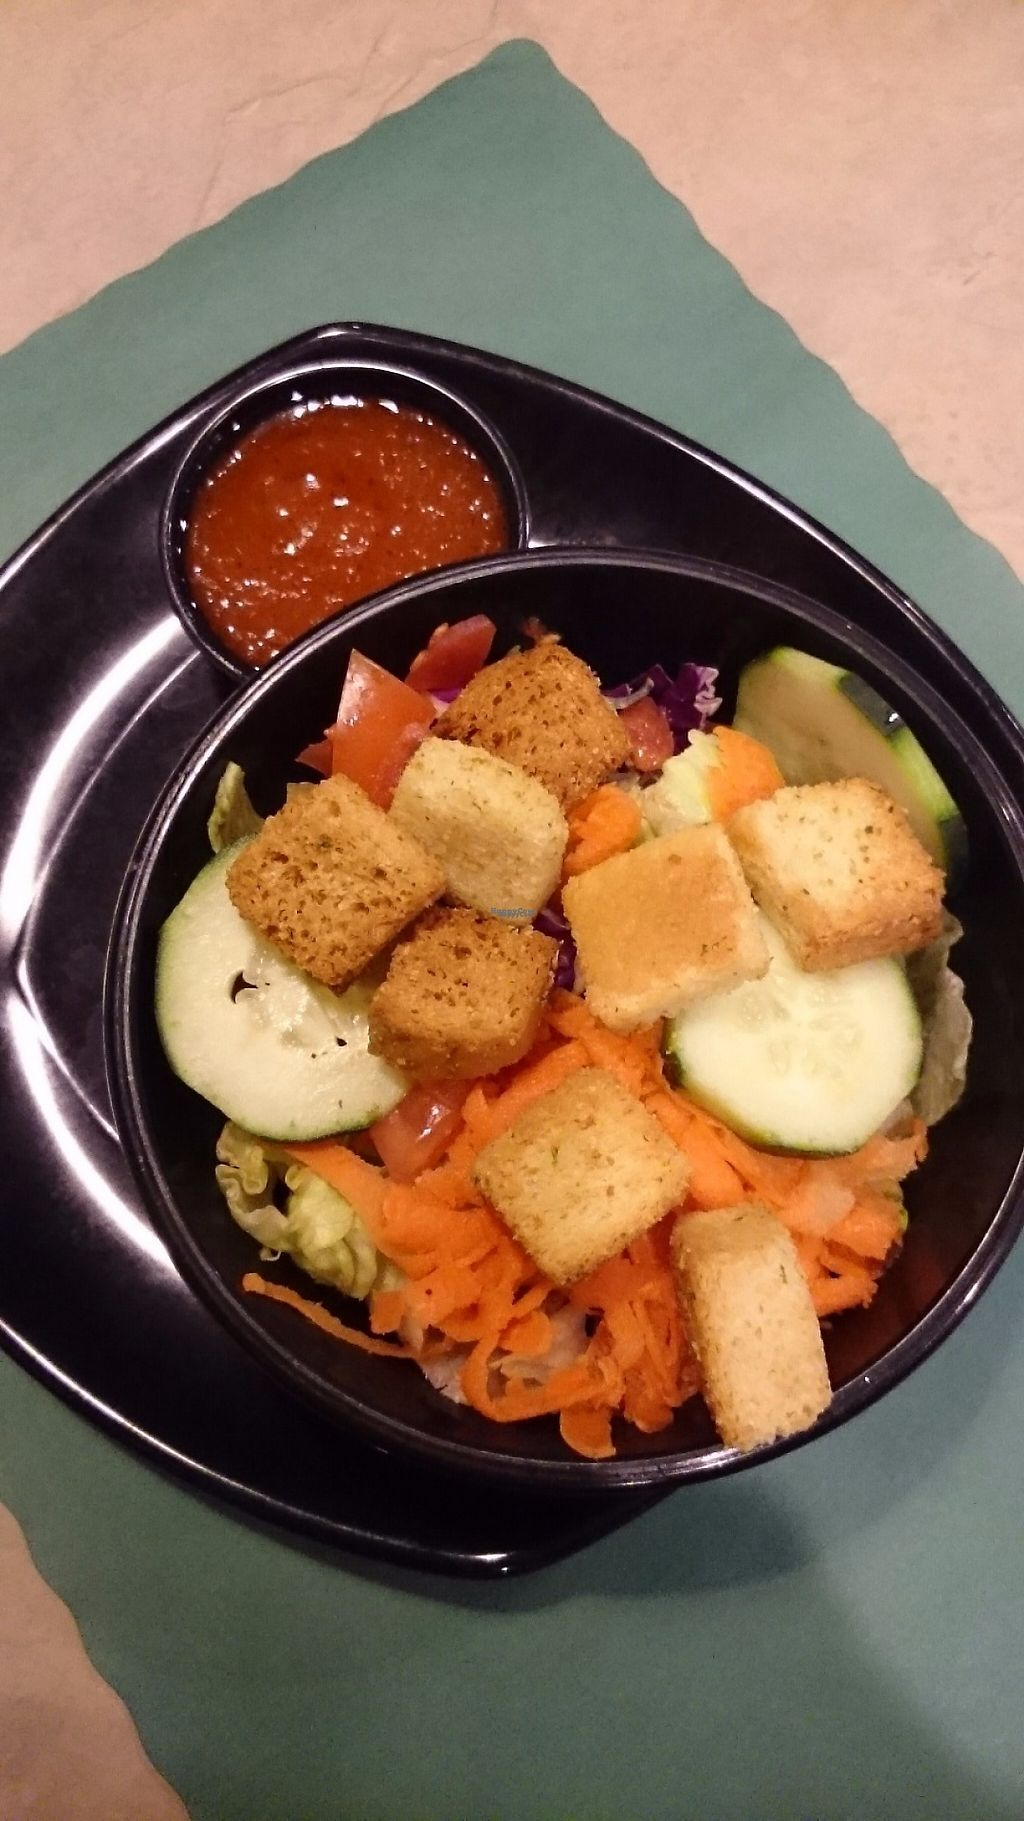 """Photo of Franconia Heritage Restaurant  by <a href=""""/members/profile/ZoraySpielvogel"""">ZoraySpielvogel</a> <br/>Salad with house sweet celery dressing.  <br/> March 17, 2017  - <a href='/contact/abuse/image/88823/237662'>Report</a>"""